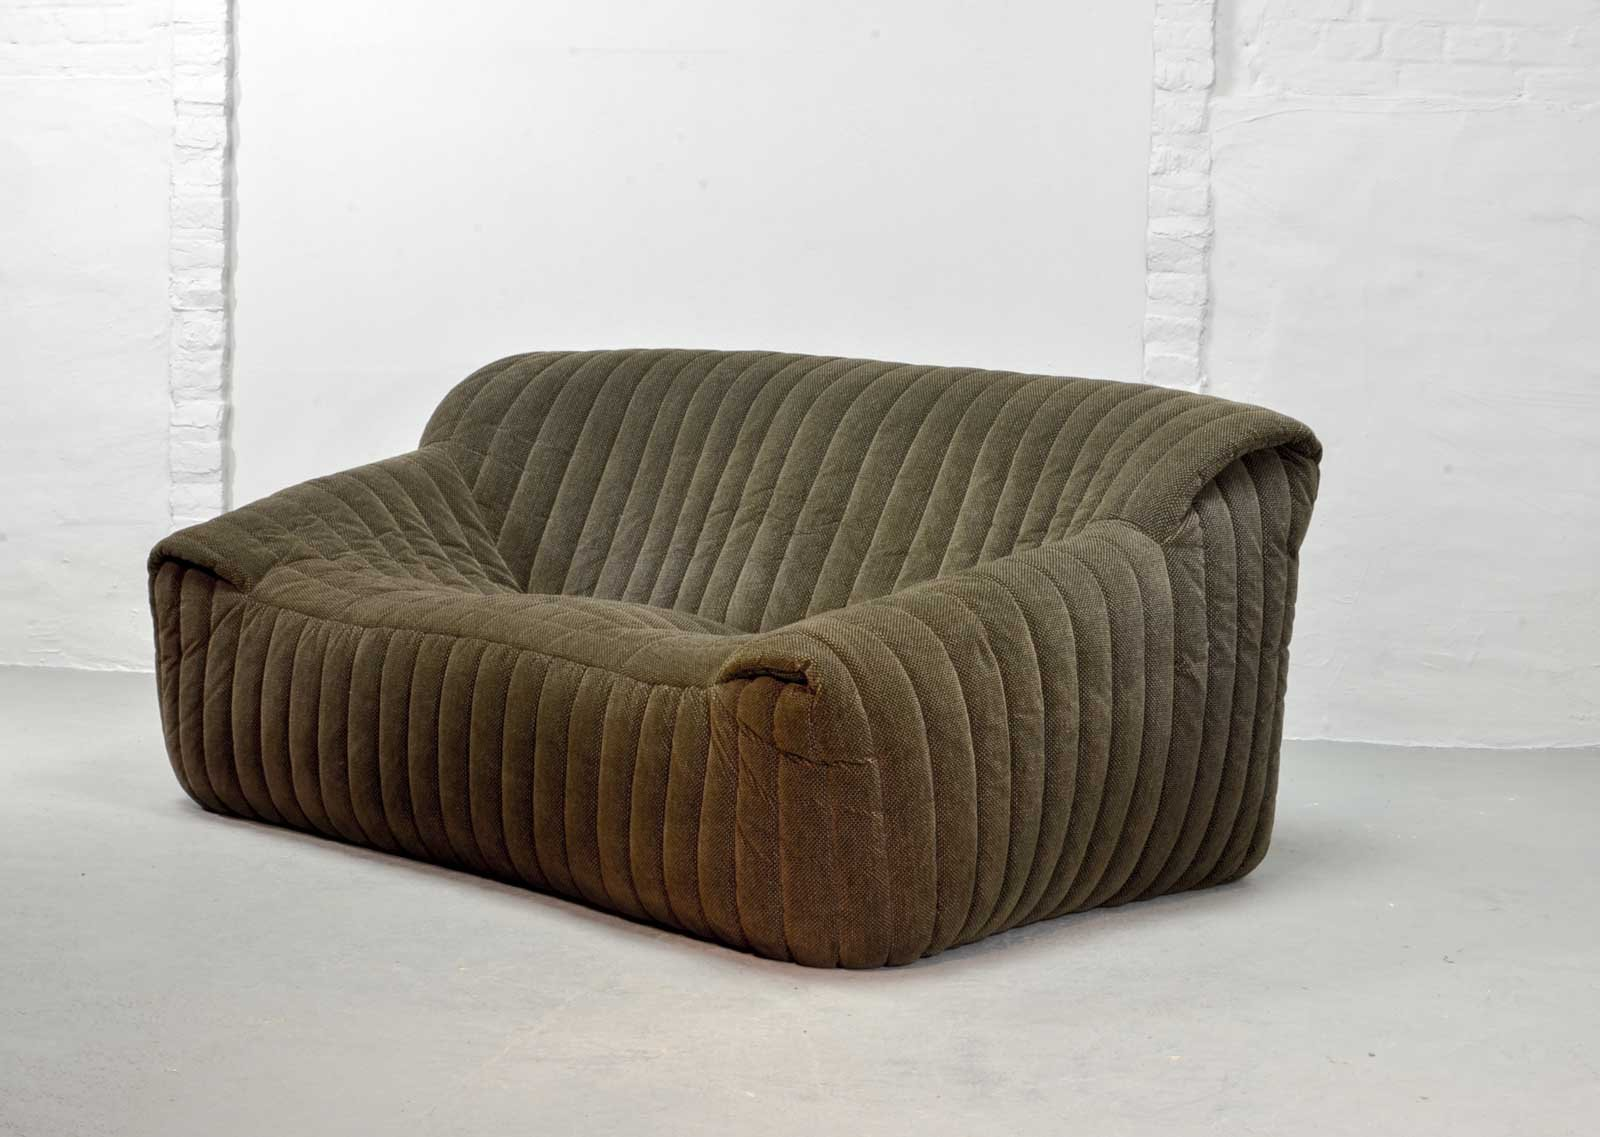 French Two Seater Sofa By Annie Hieronymus For Ligne Roset, 1970s